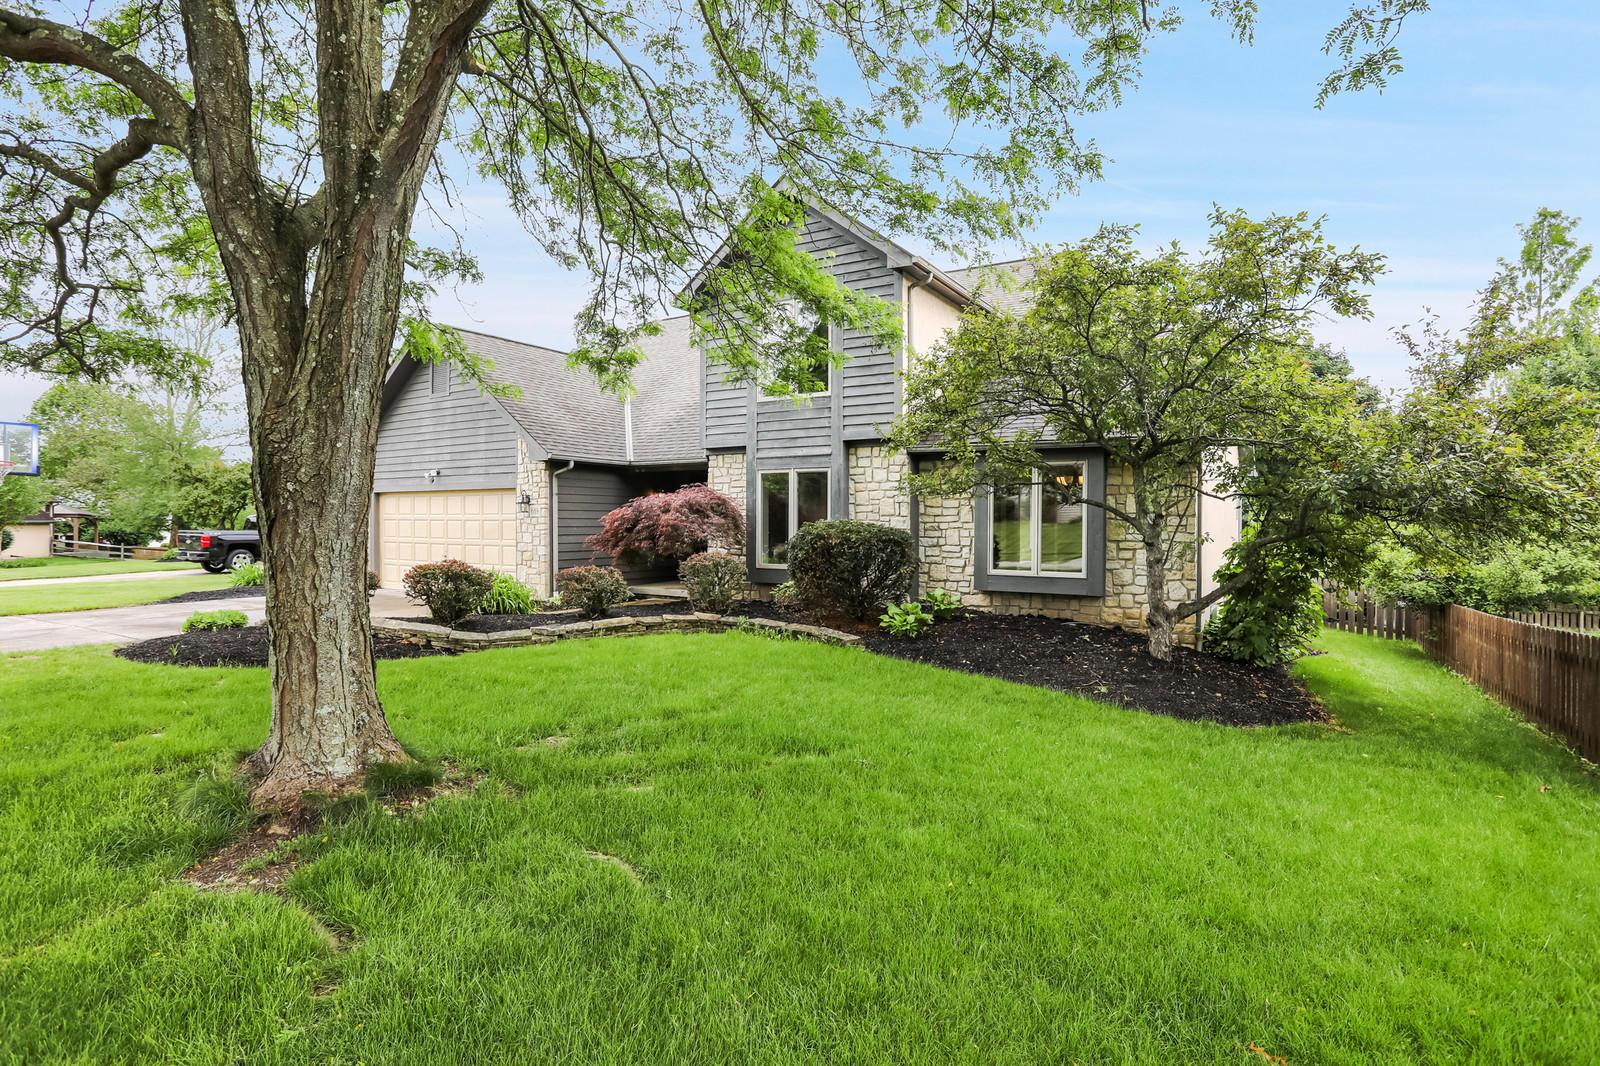 Photo of 689 Stag Place, Gahanna, OH 43230